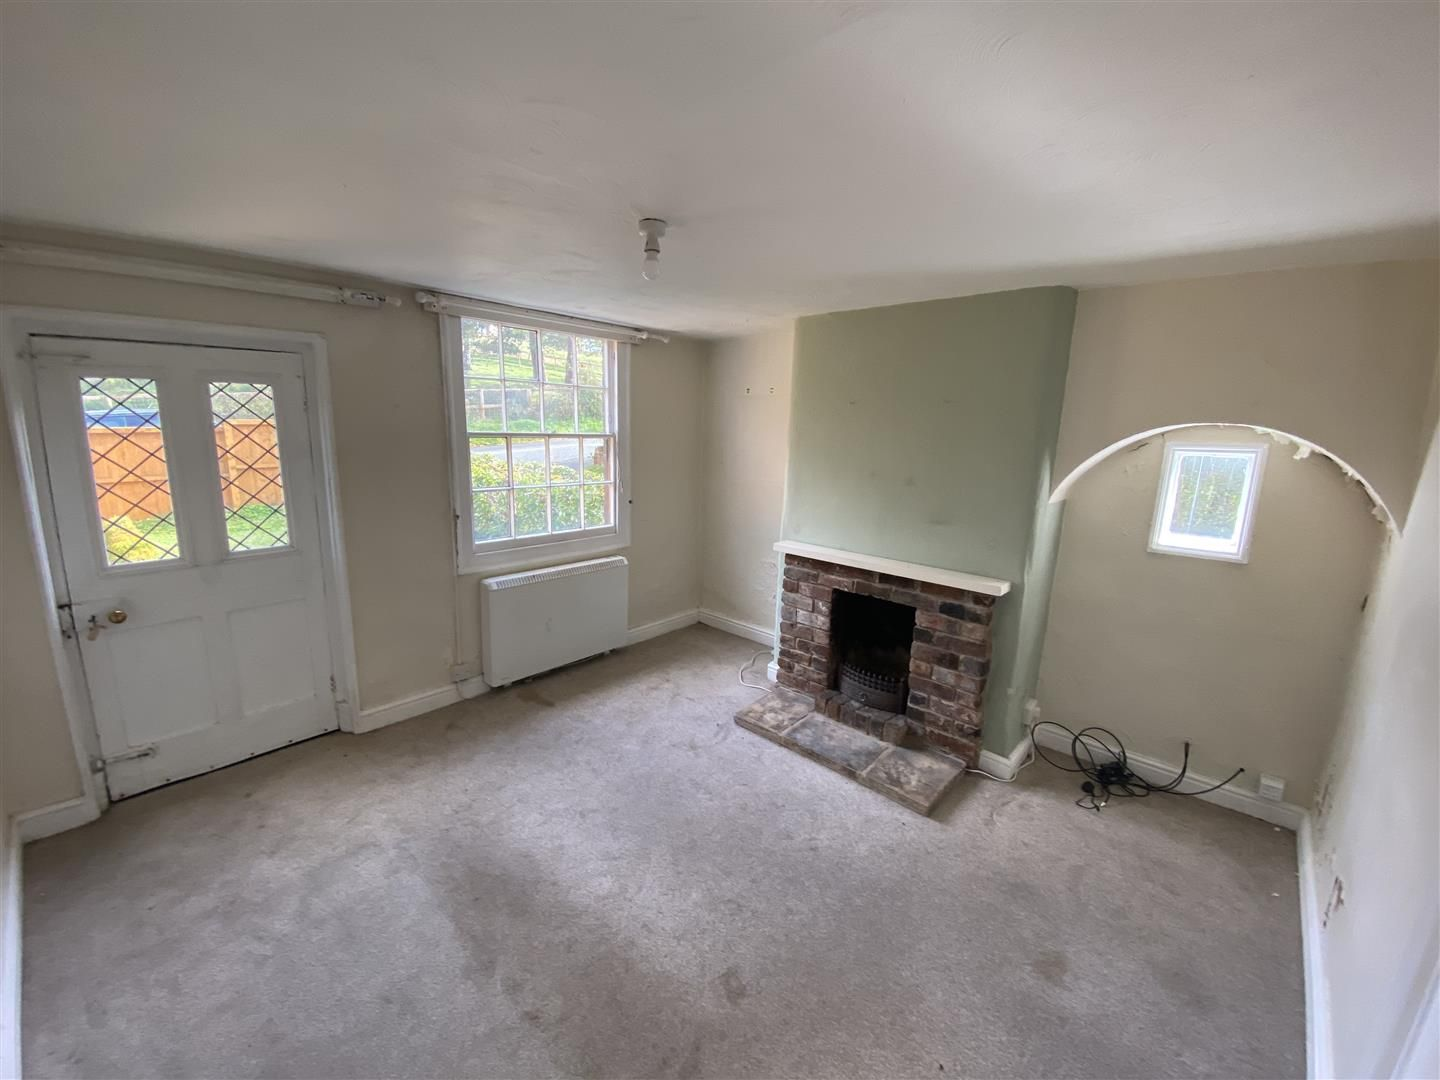 2 bed end-of-terrace for sale in Kinver 9